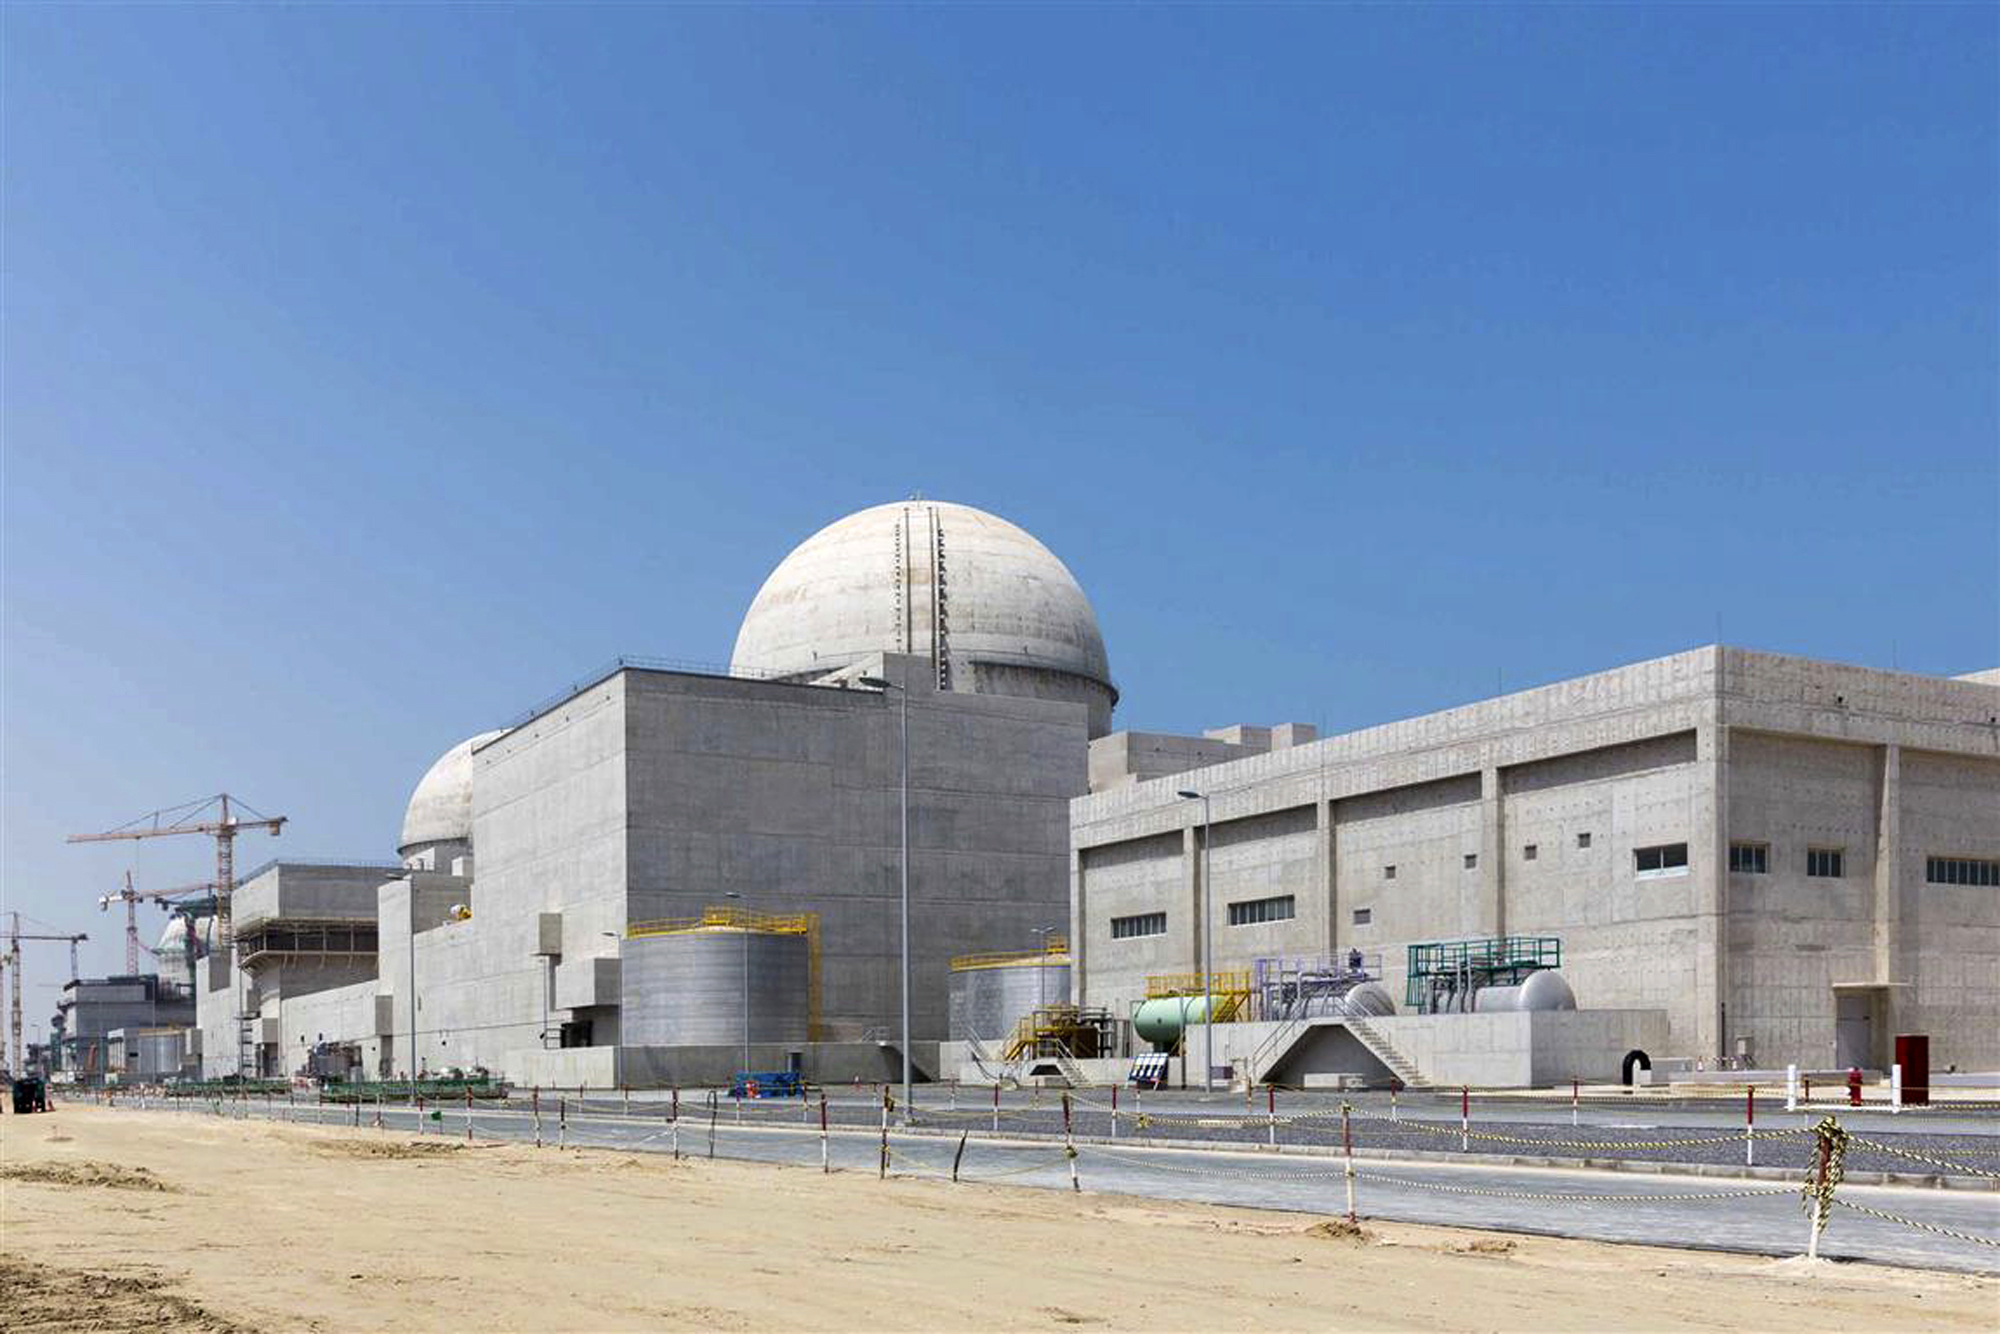 UAE launches start-up operations at first Arab nuclear power plant